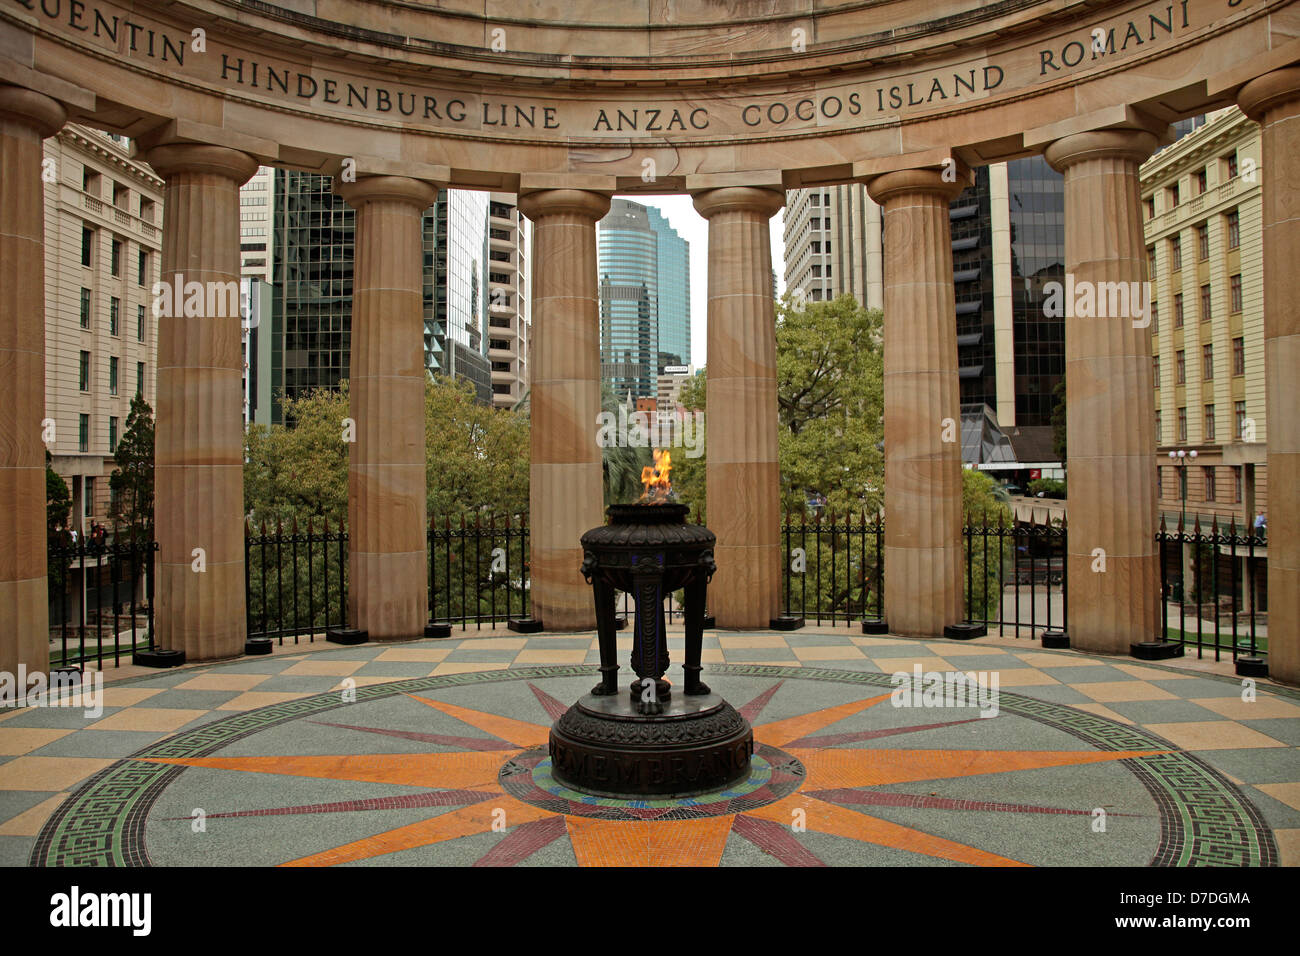 war memorial The Shrine of Remembrance in ANZAC Square with its Eternal Flame in Brisbane, Queensland, Australia - Stock Image